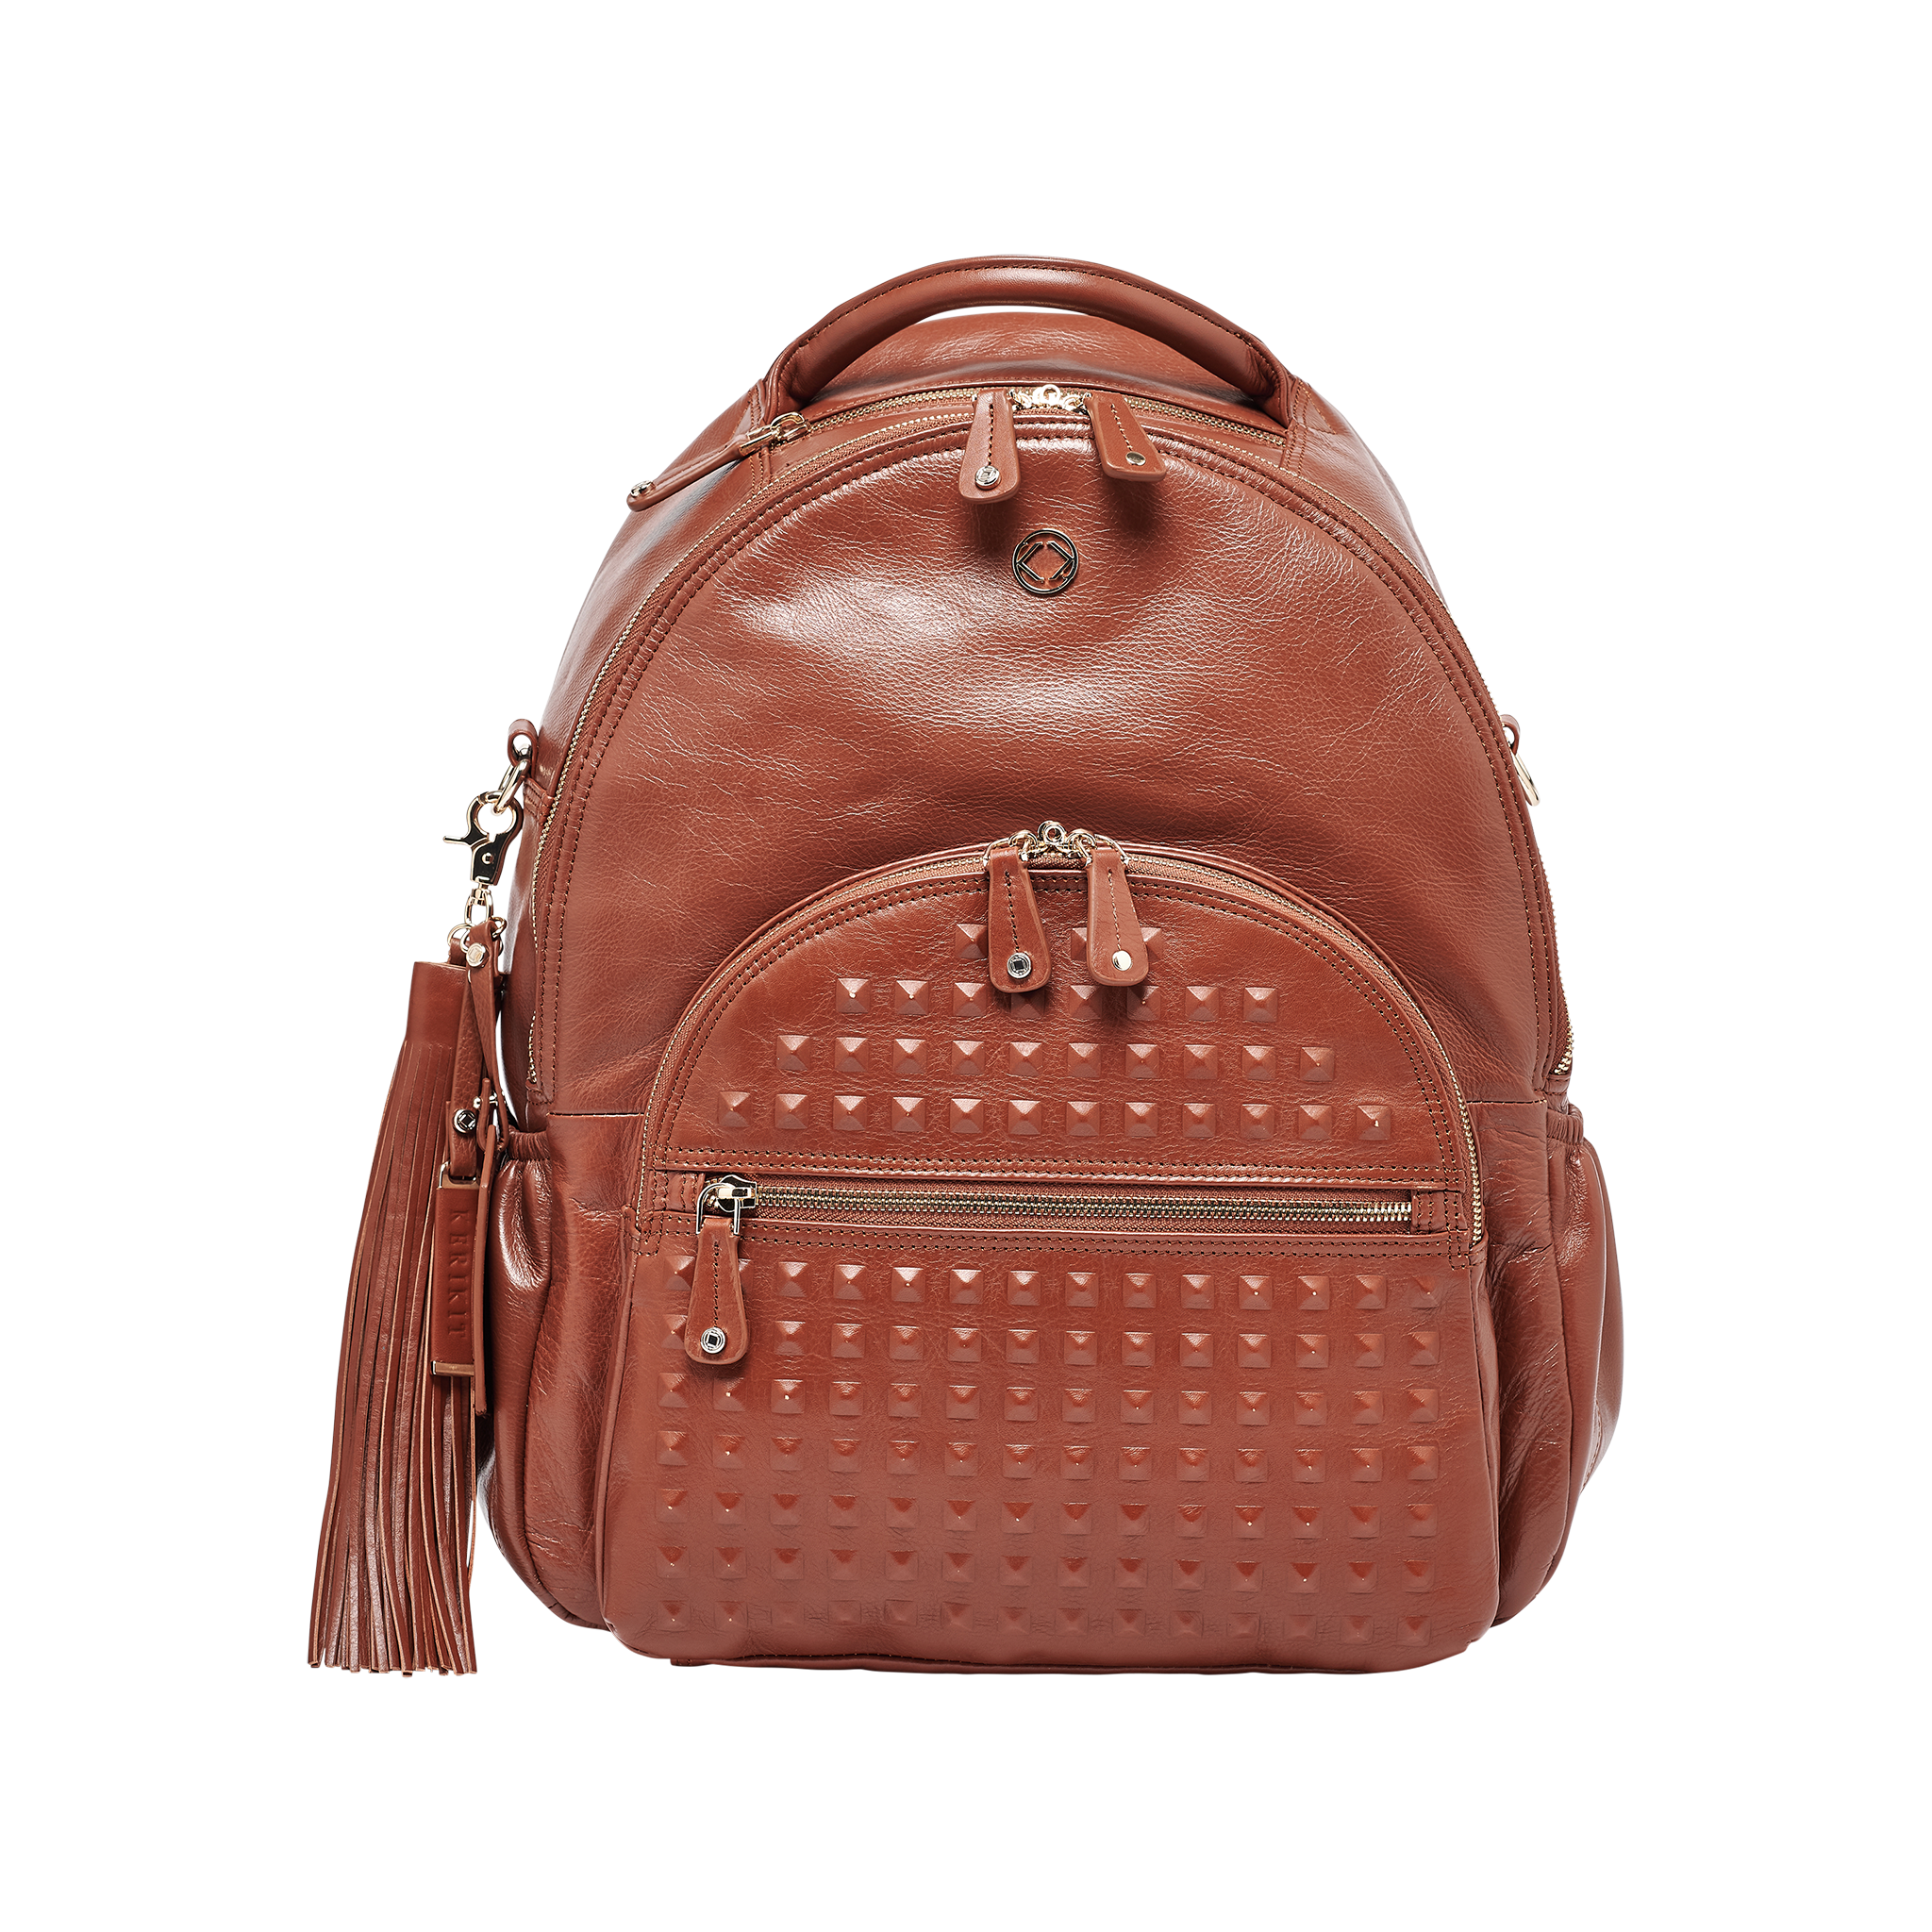 Joy XL Studded Tan Leather Backpack